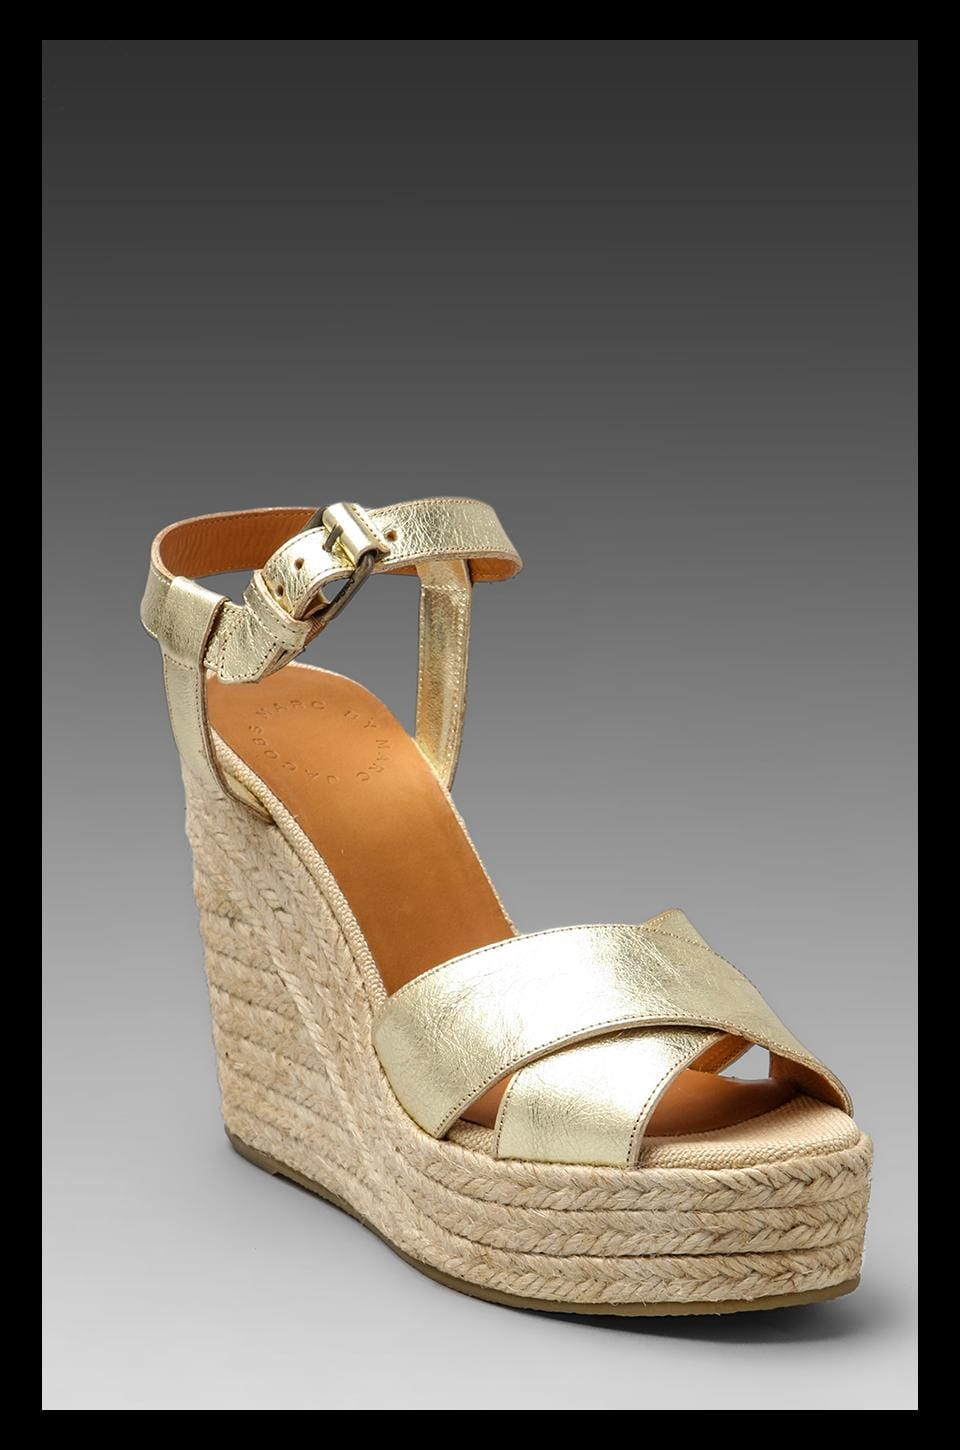 Marc by Marc Jacobs Metallic Espadrille Wedge Sandal in Gold